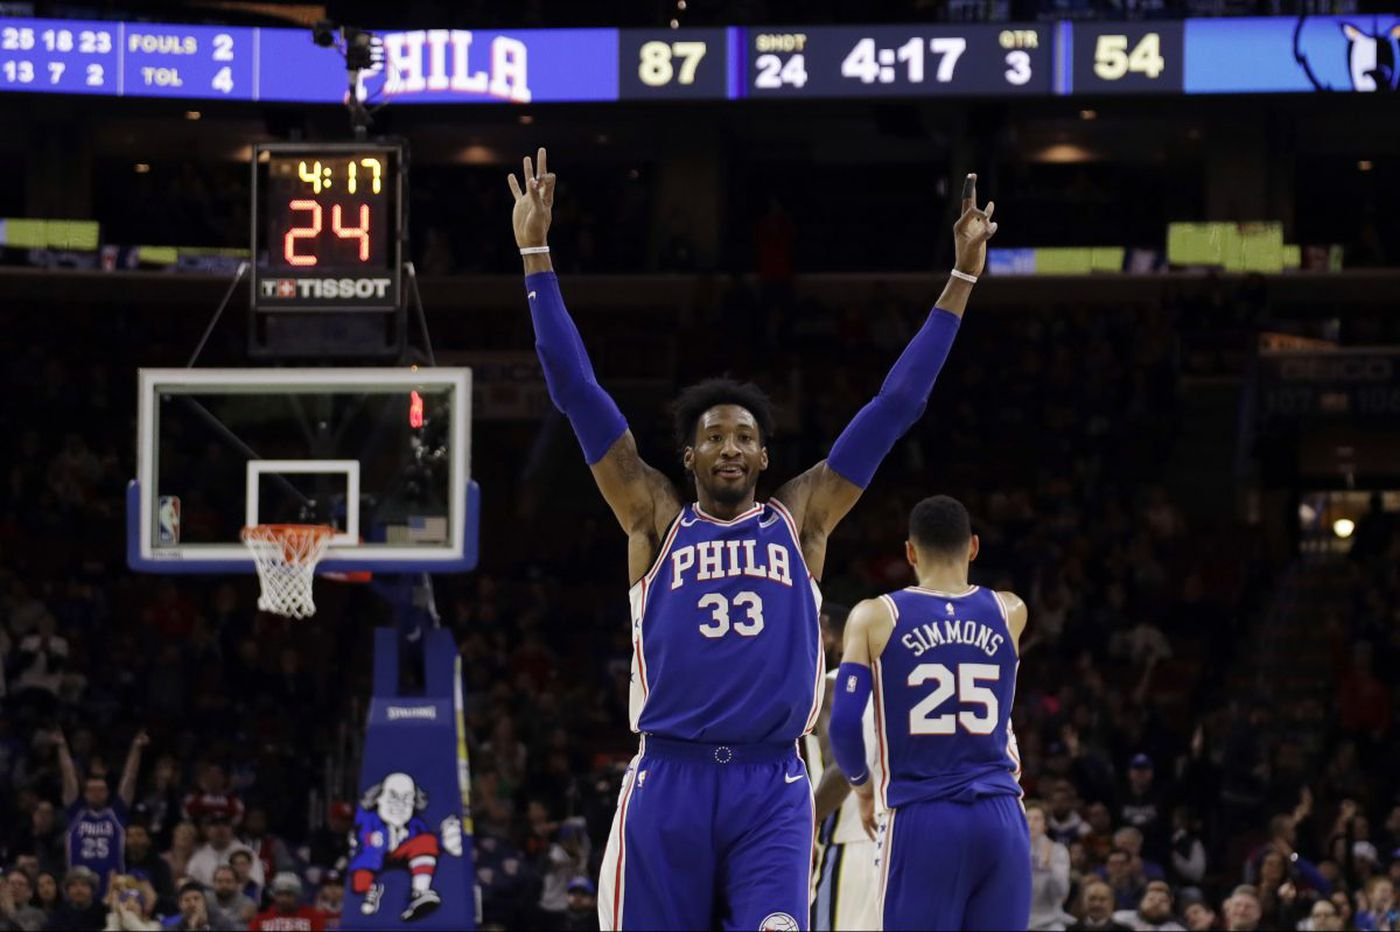 The Sixers are chasing the No. 3 seed, and the stakes are high | David Murphy